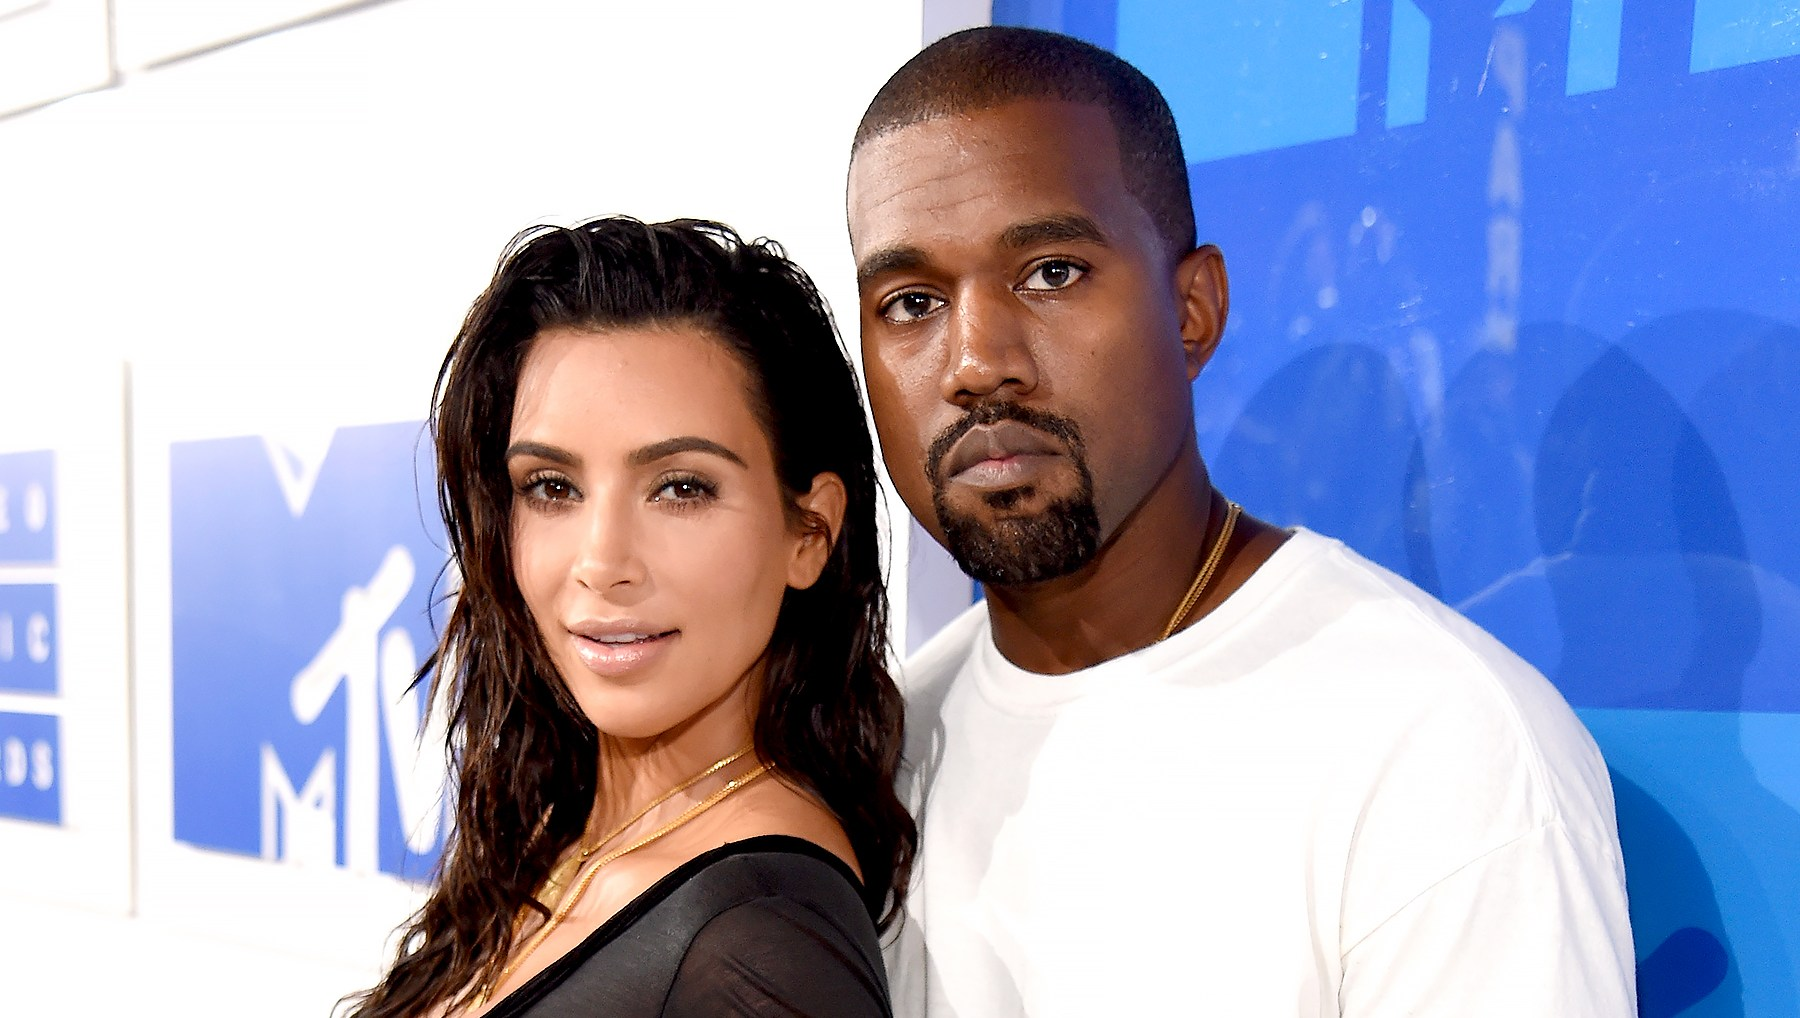 Kim-Kardashian-and-Kanye-West-move-home